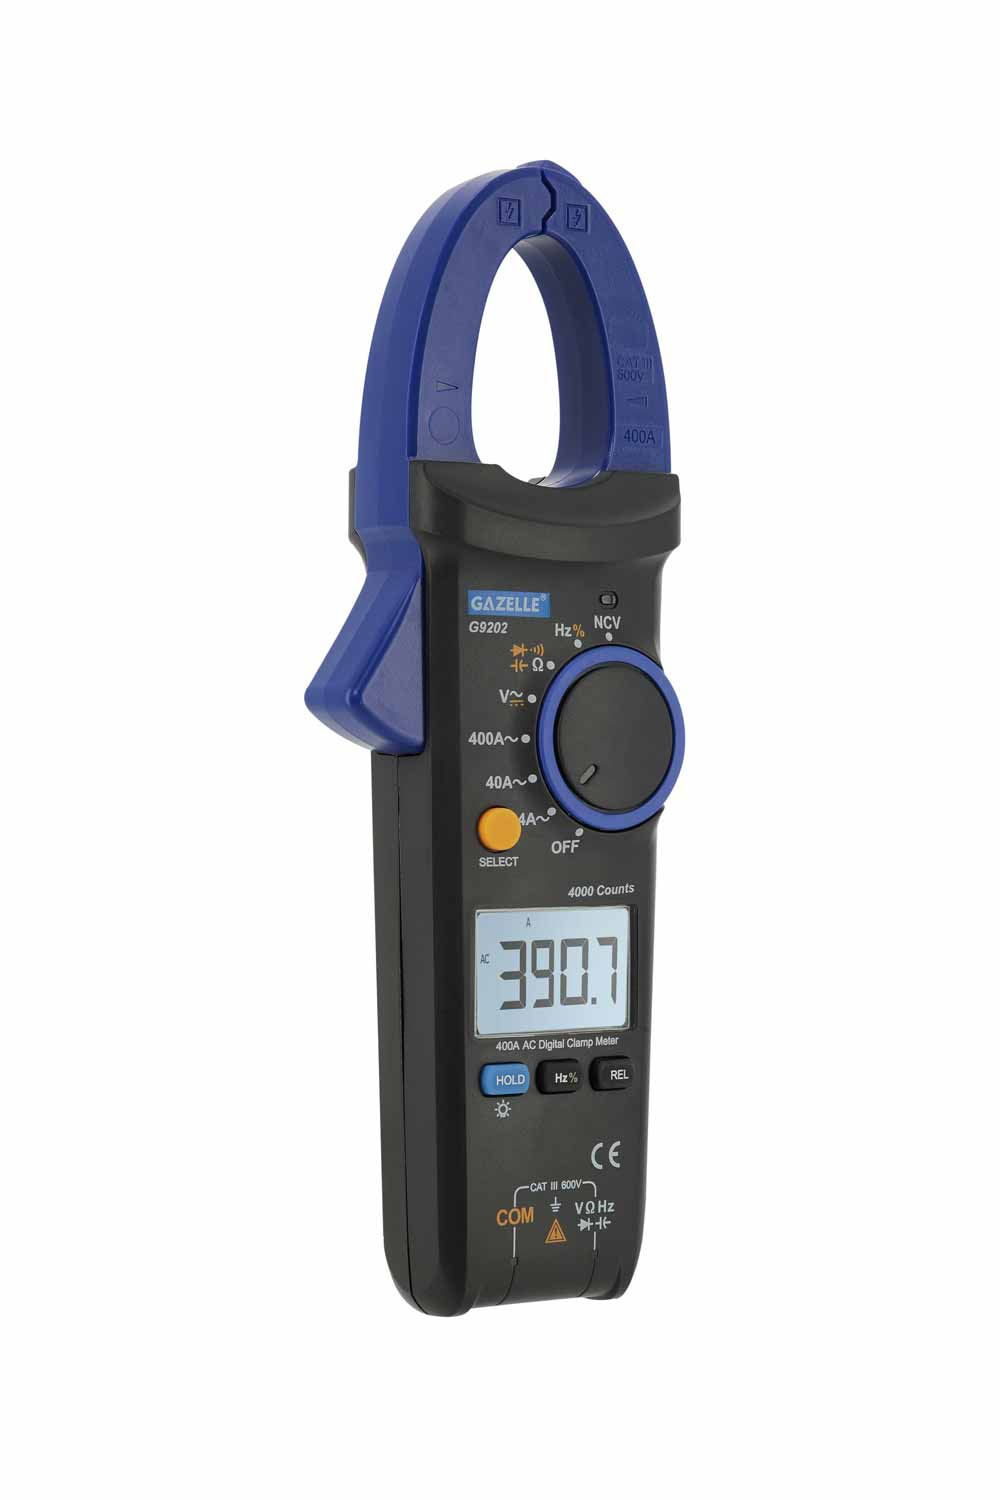 - 400A Digital Clamp Meters